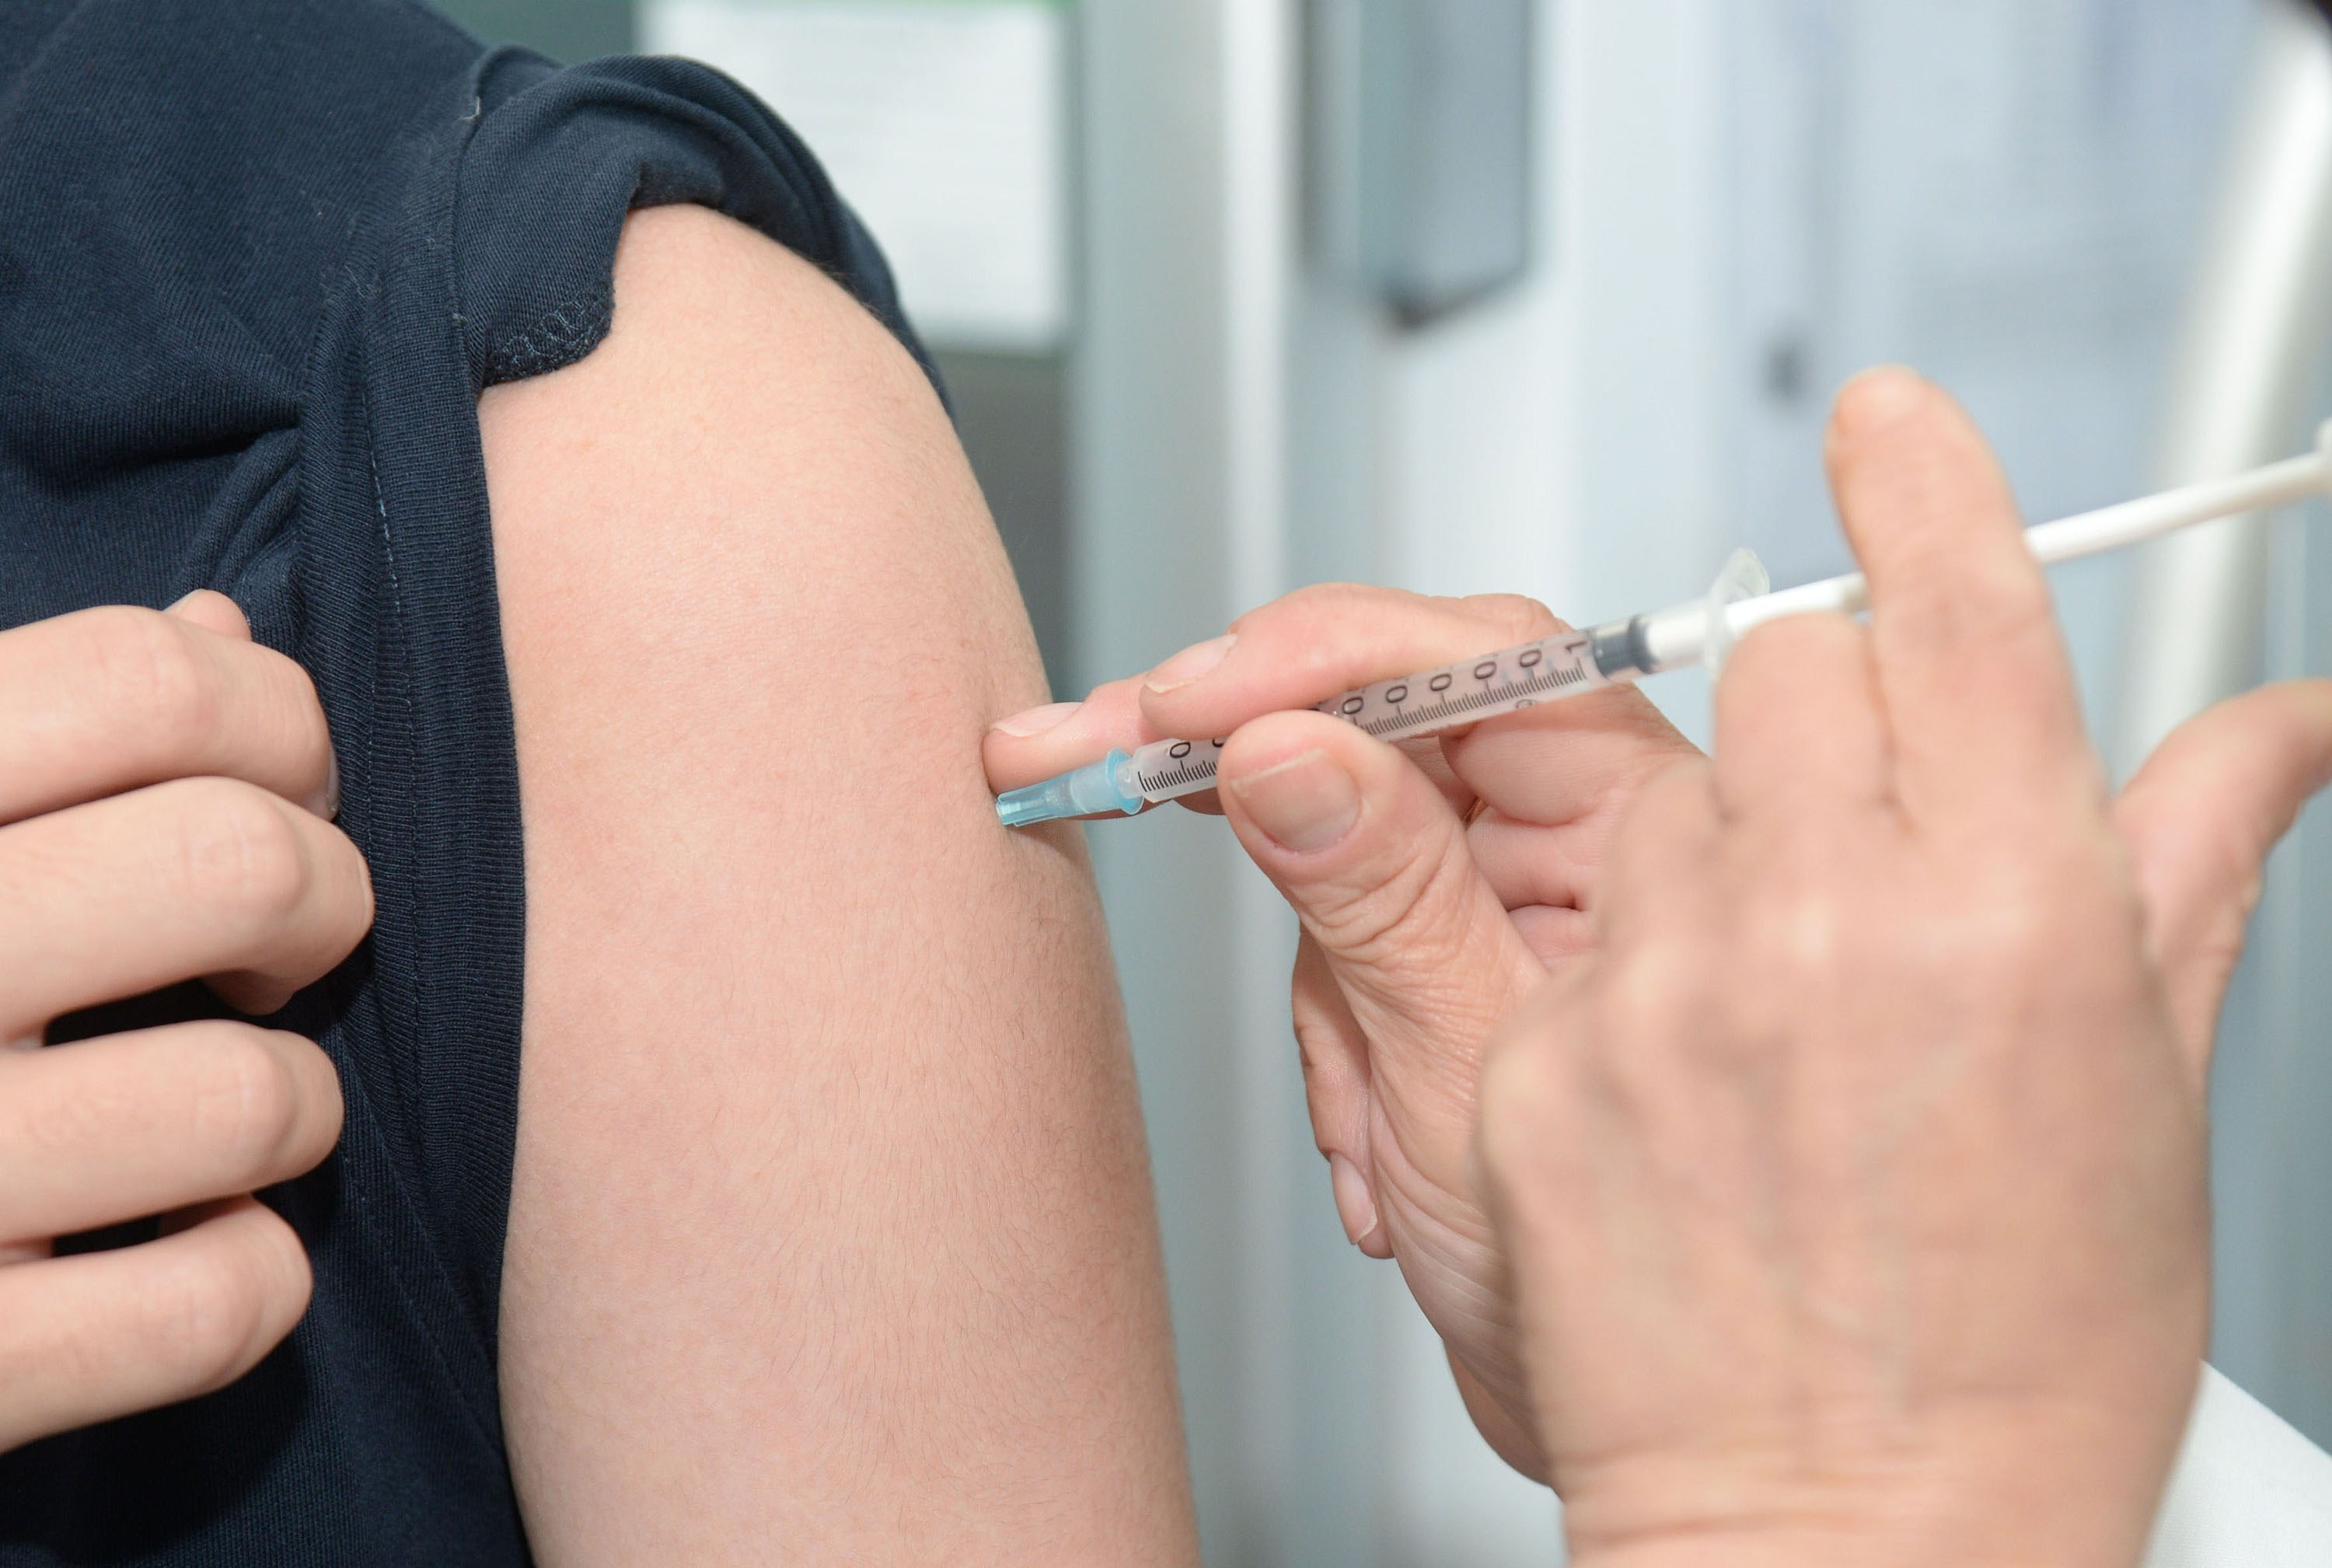 arm injection vaccination